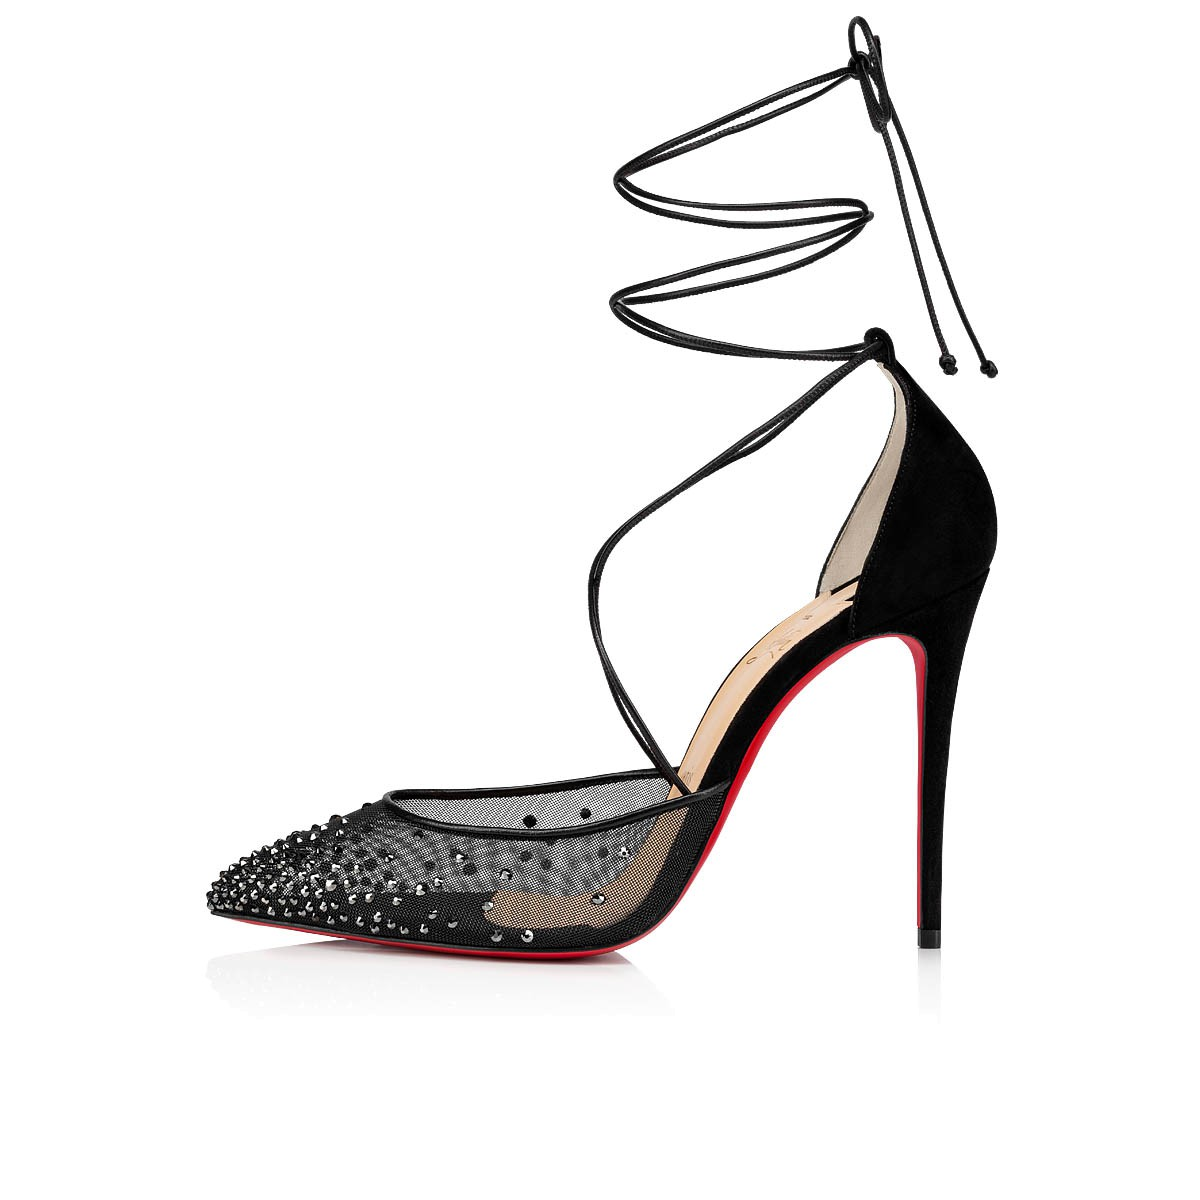 Souliers - Maia Labella - Christian Louboutin